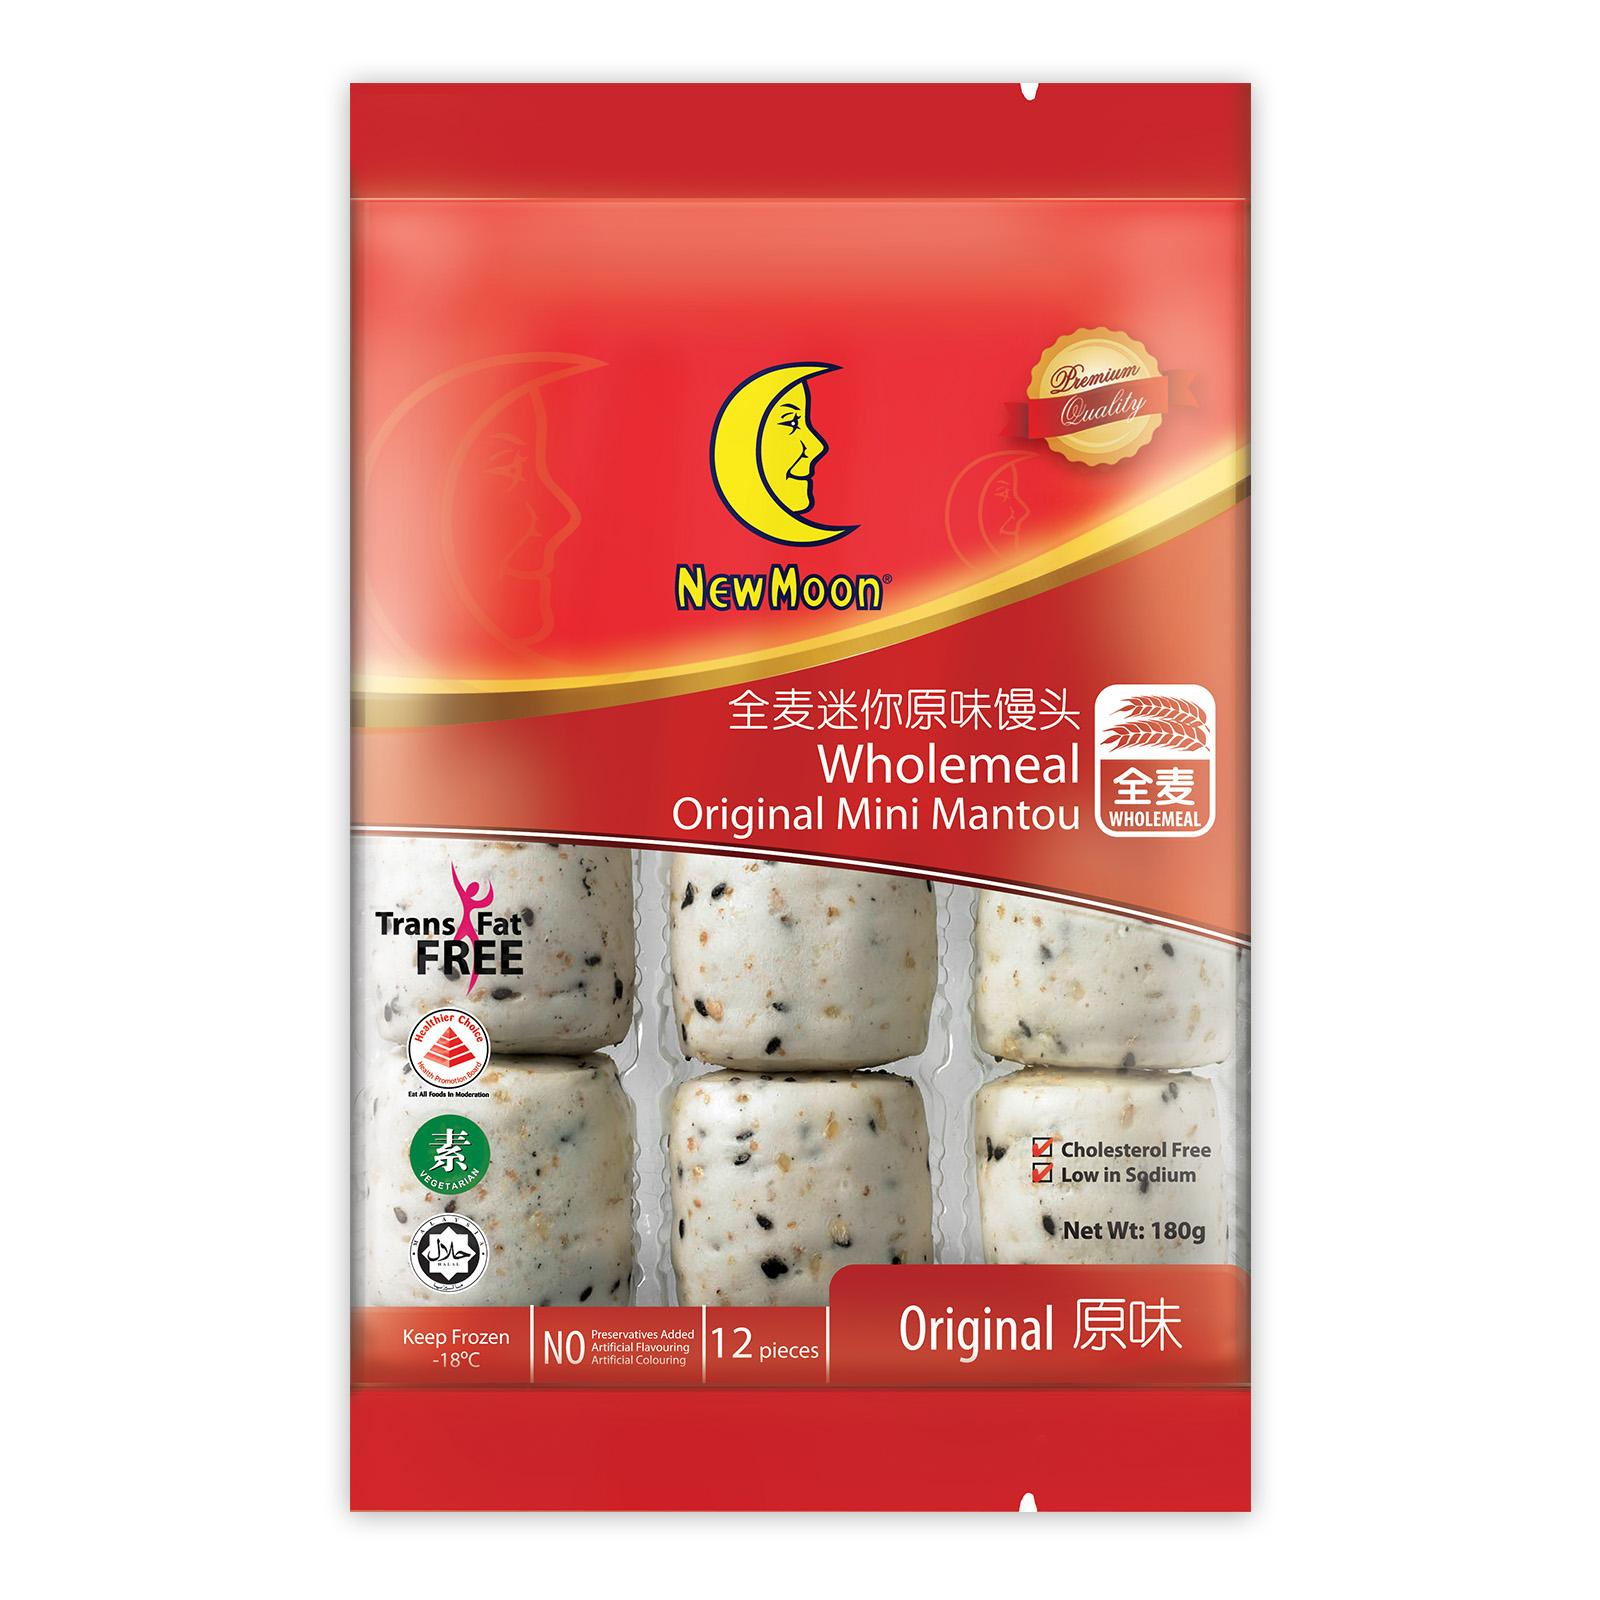 New Moon Wholemeal Original Mini Mantou - Frozen By Redmart.